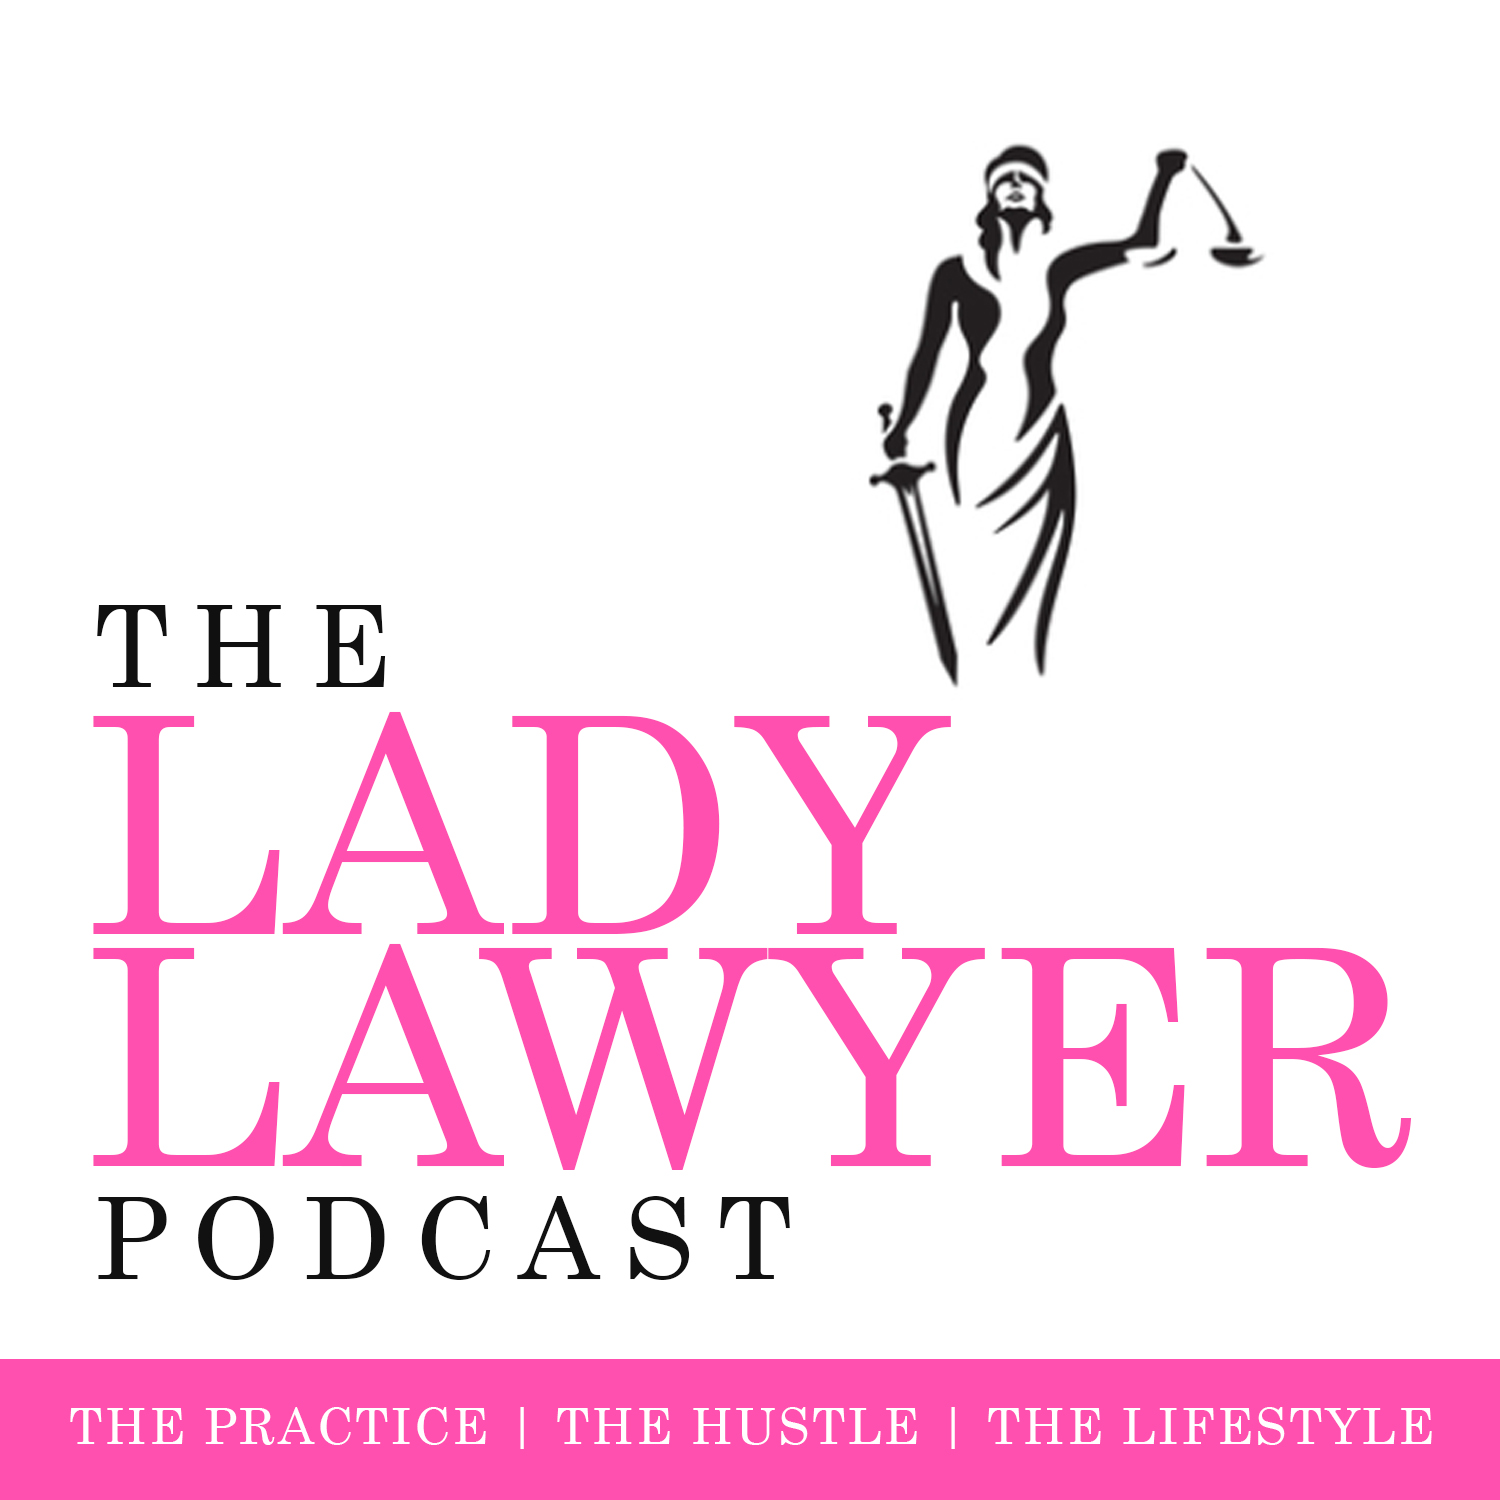 The Lady Lawyer Podcast show art